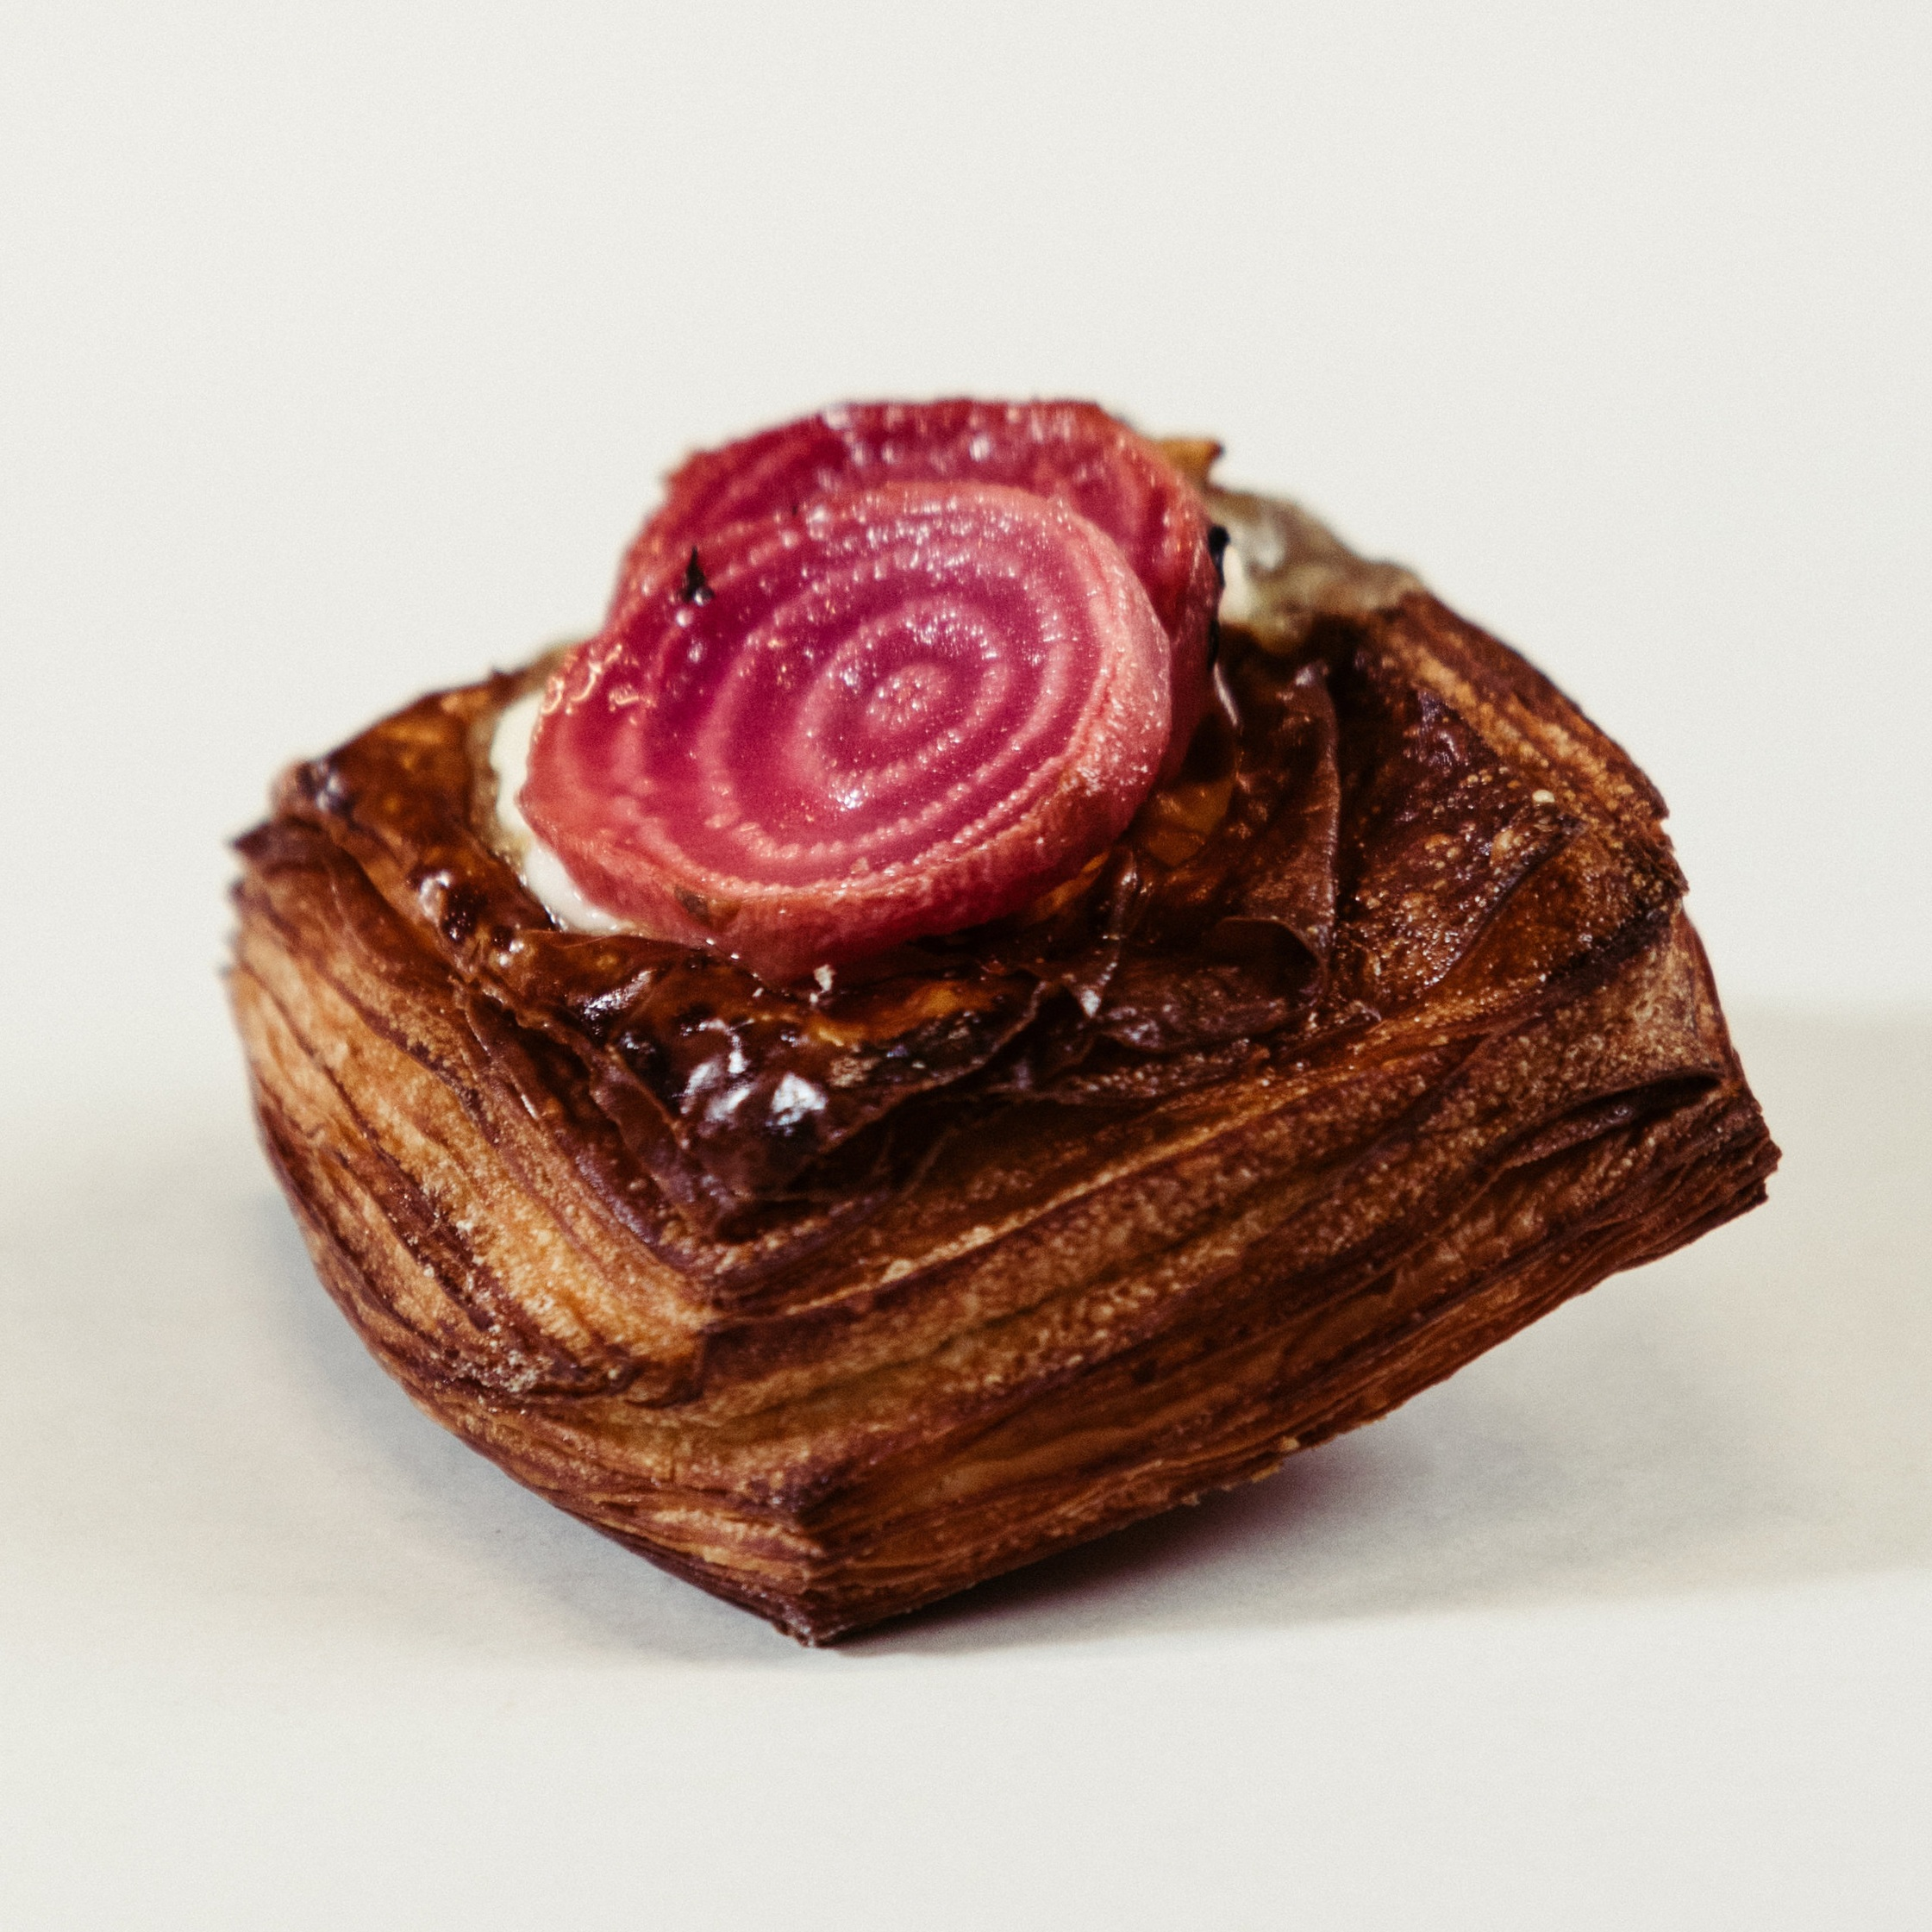 Savoury Danish  Seasonal fruit or veg, often on a bed of  cheese. The example above shows candied beetroot & ricotta.